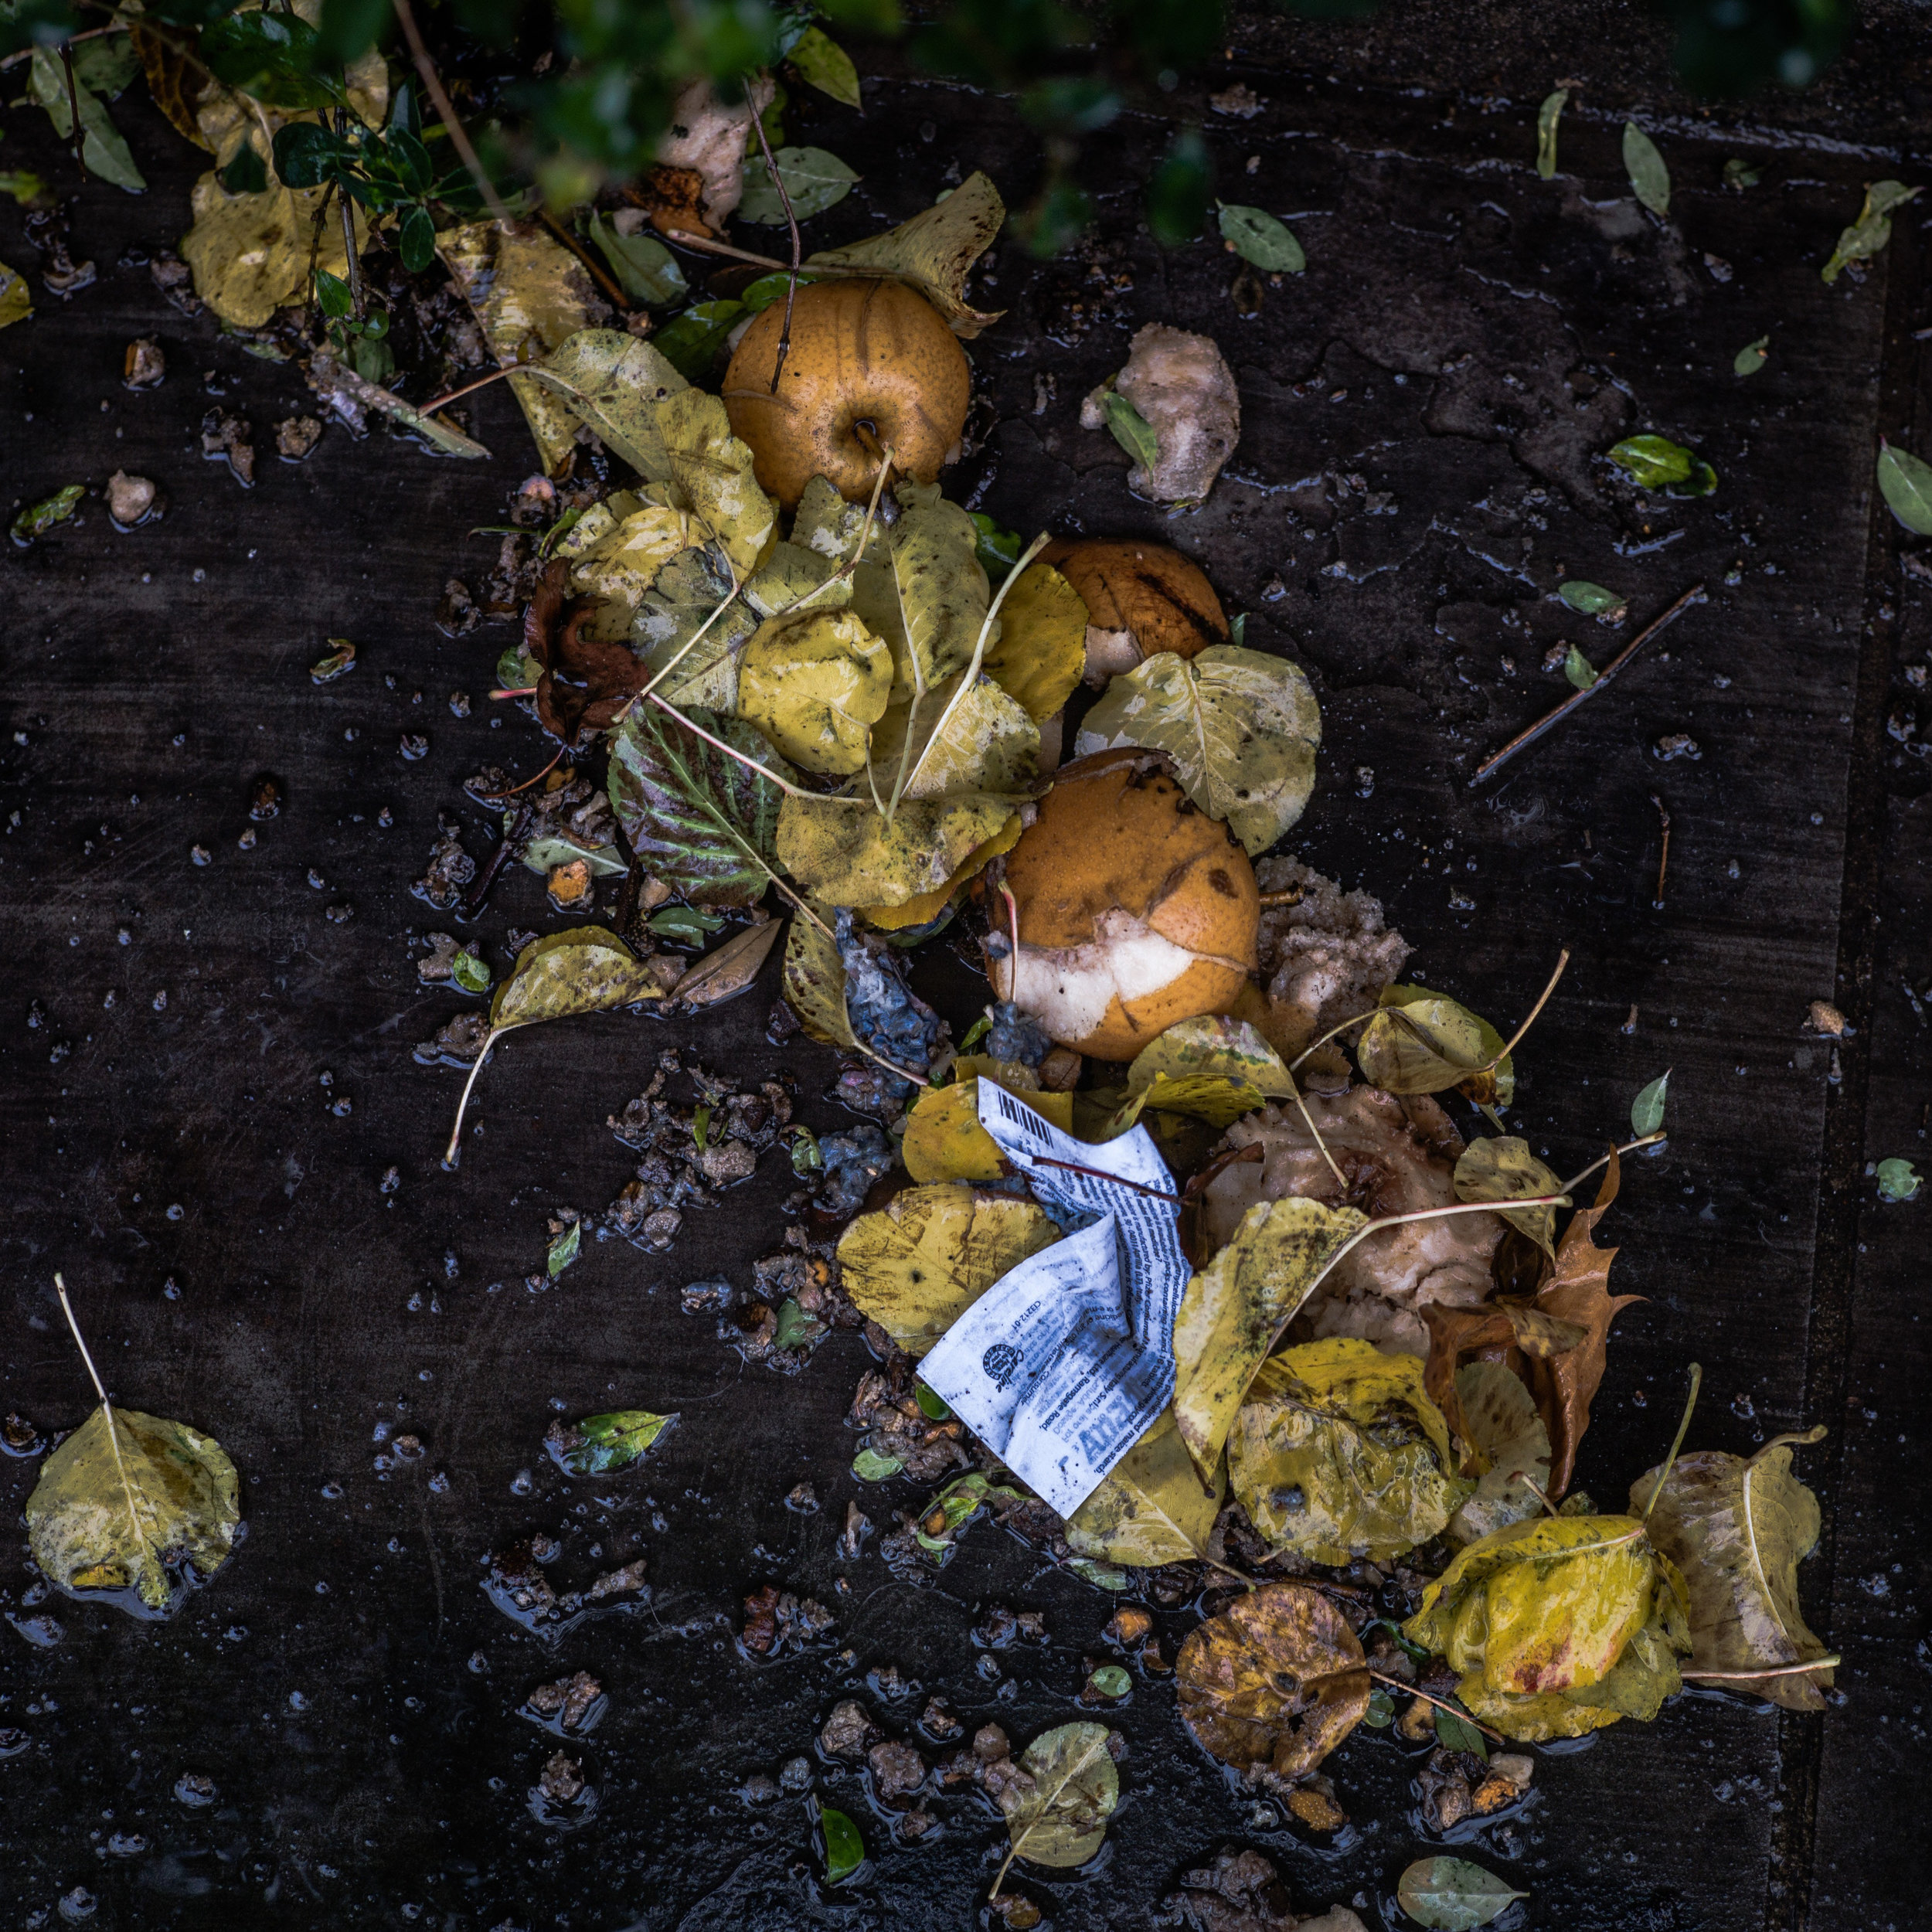 Each year over 3,700 tons of food waste is buried in the Pitkin County Landfill. -